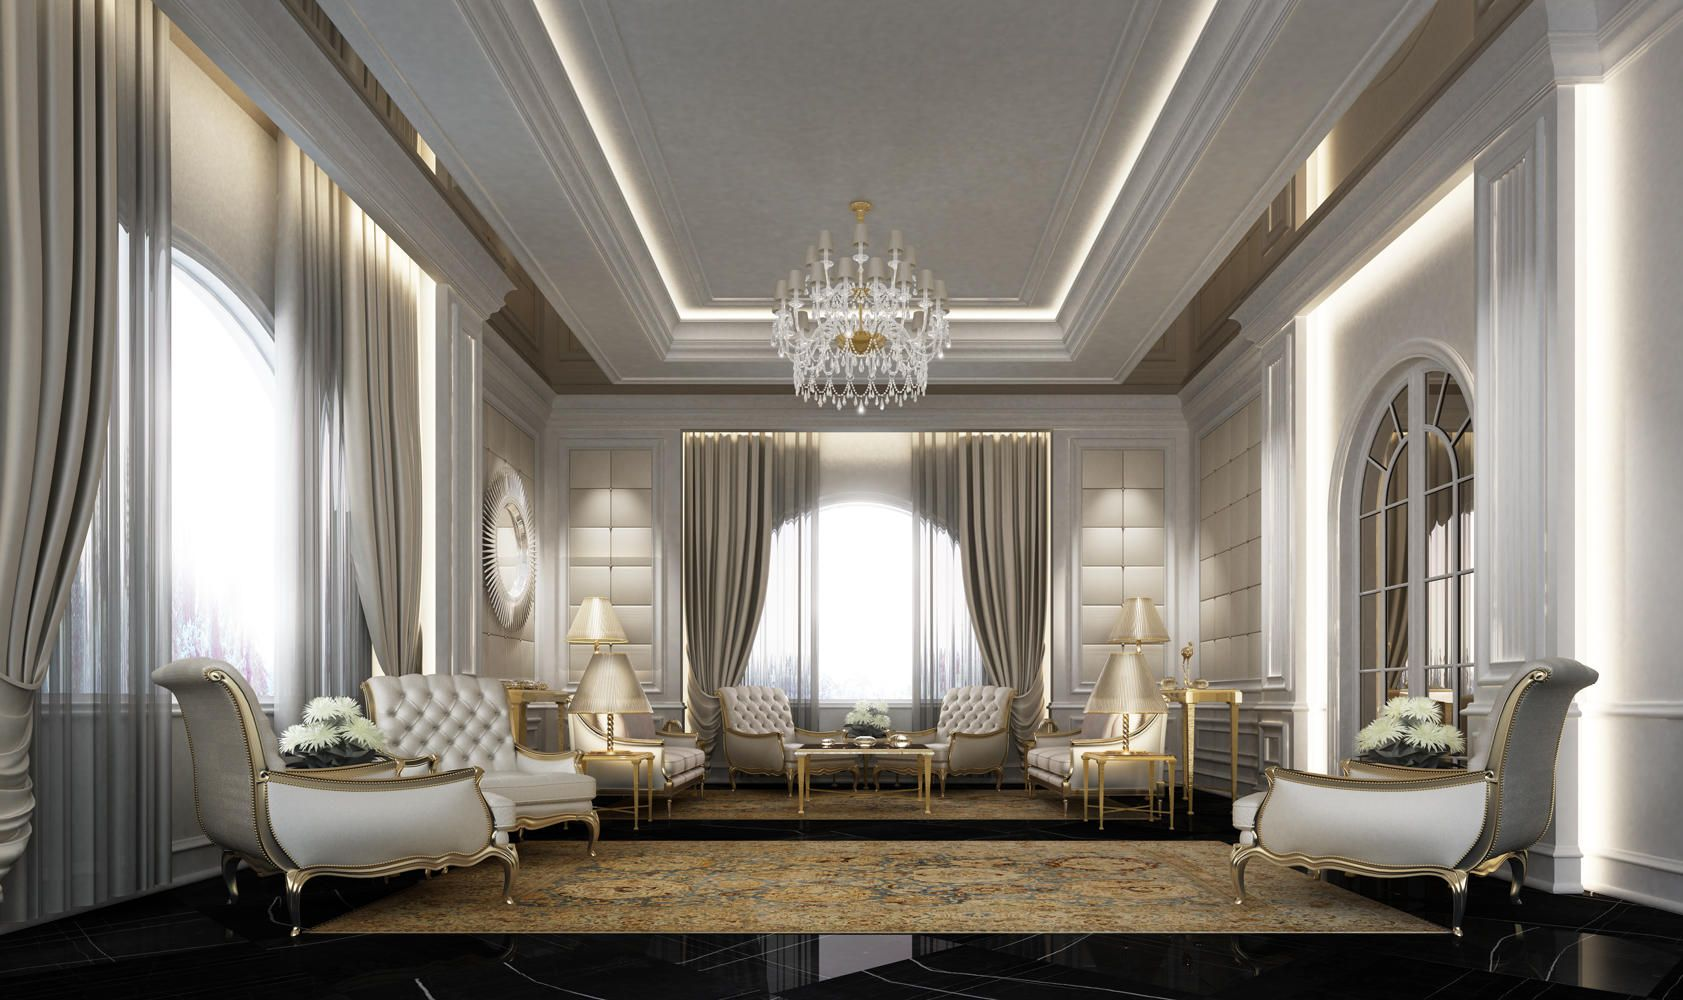 Arabic majlis designs ions design interior design Luxur home interior